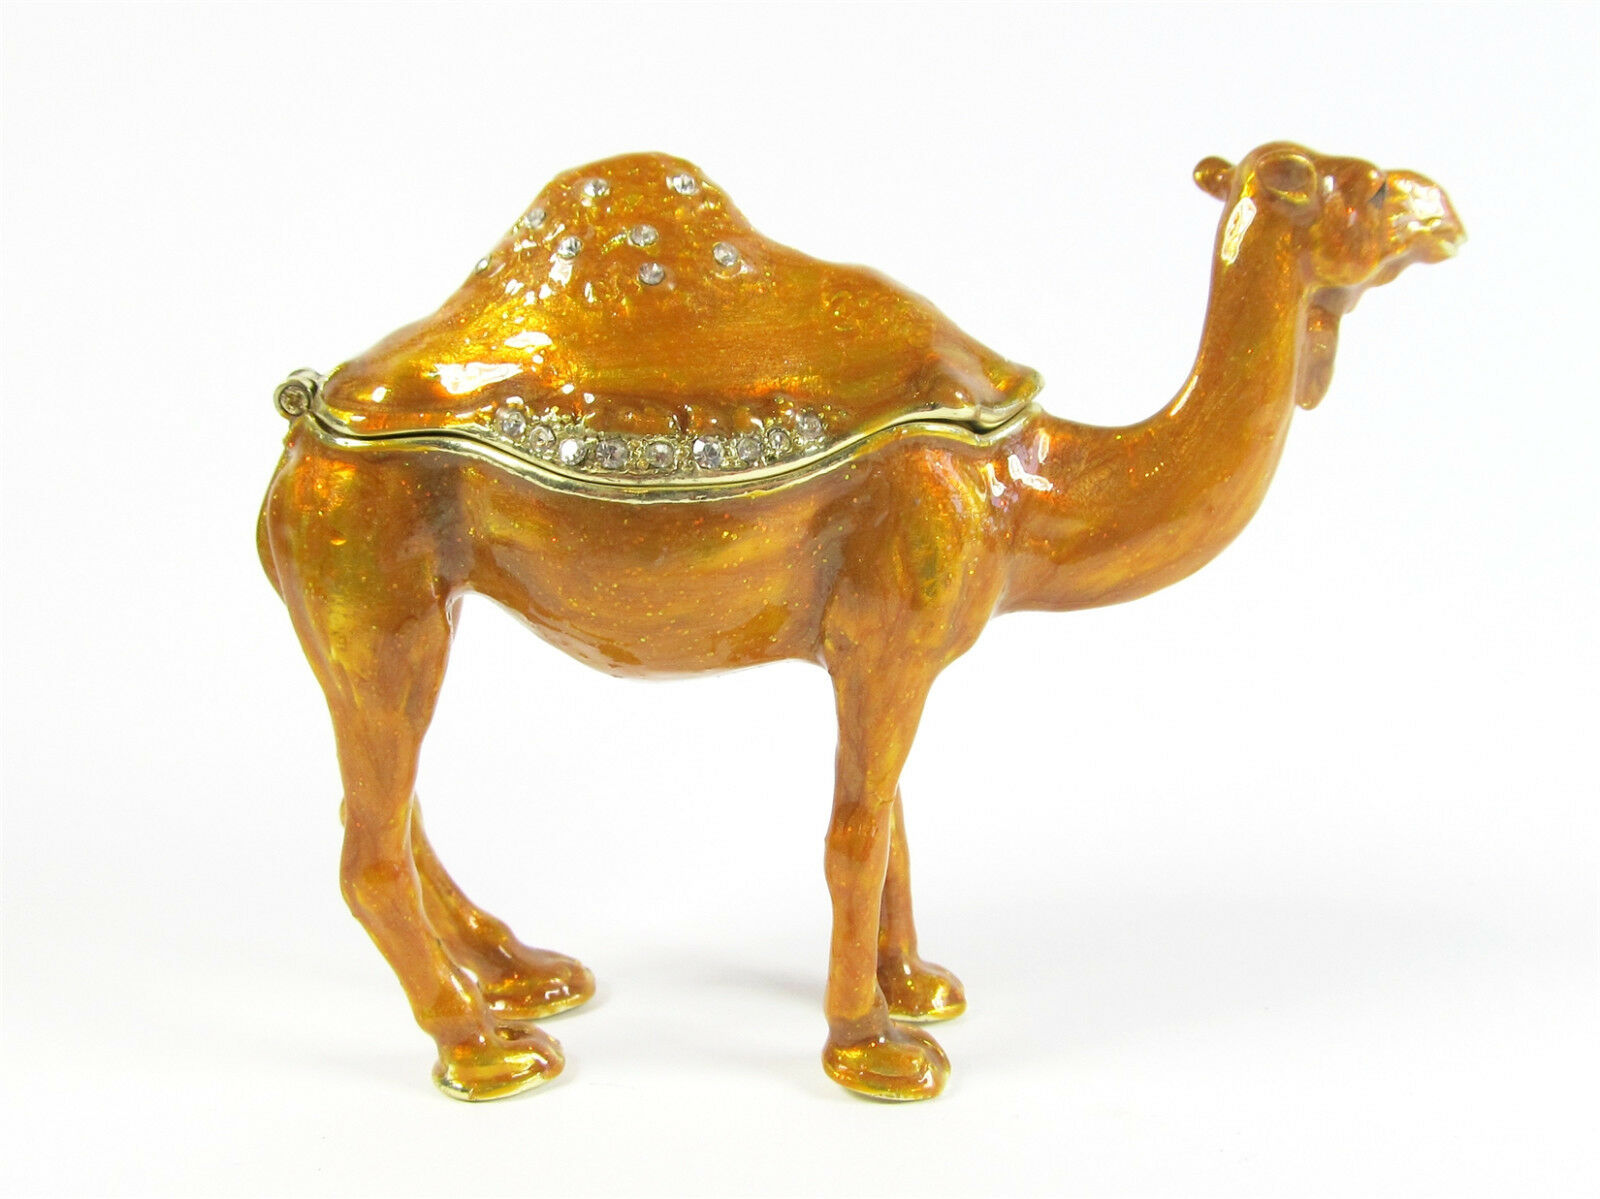 Australian Camel Single Hump Trinket Box or Figurine approx 6.5cm High